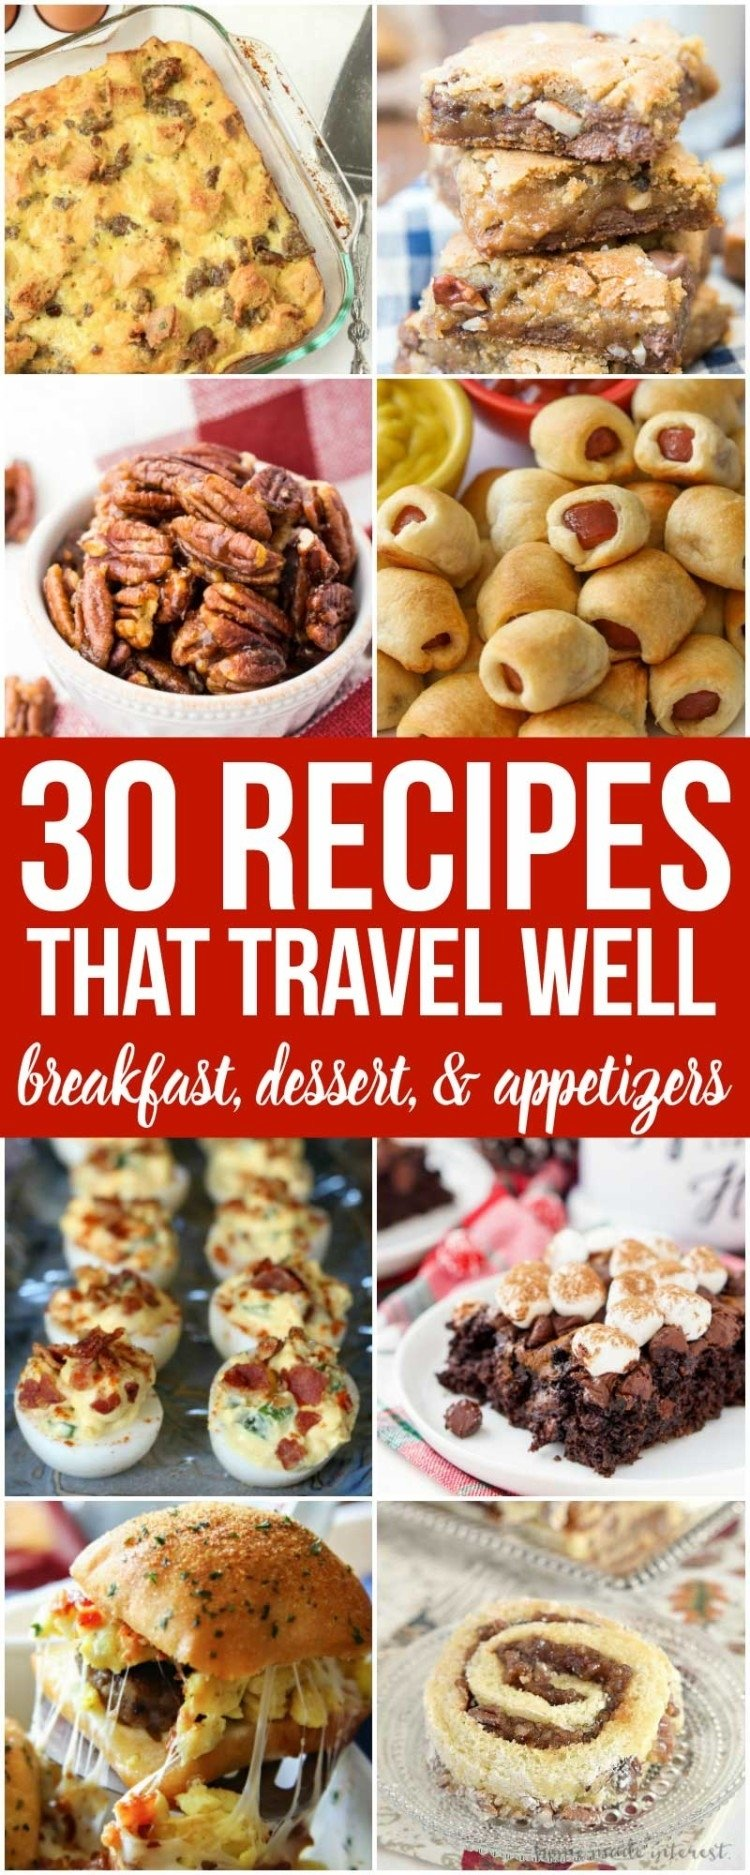 10 Lovely Quick And Easy Potluck Ideas recipes that travel well easy recipes for potluck travelingmom 1 2020